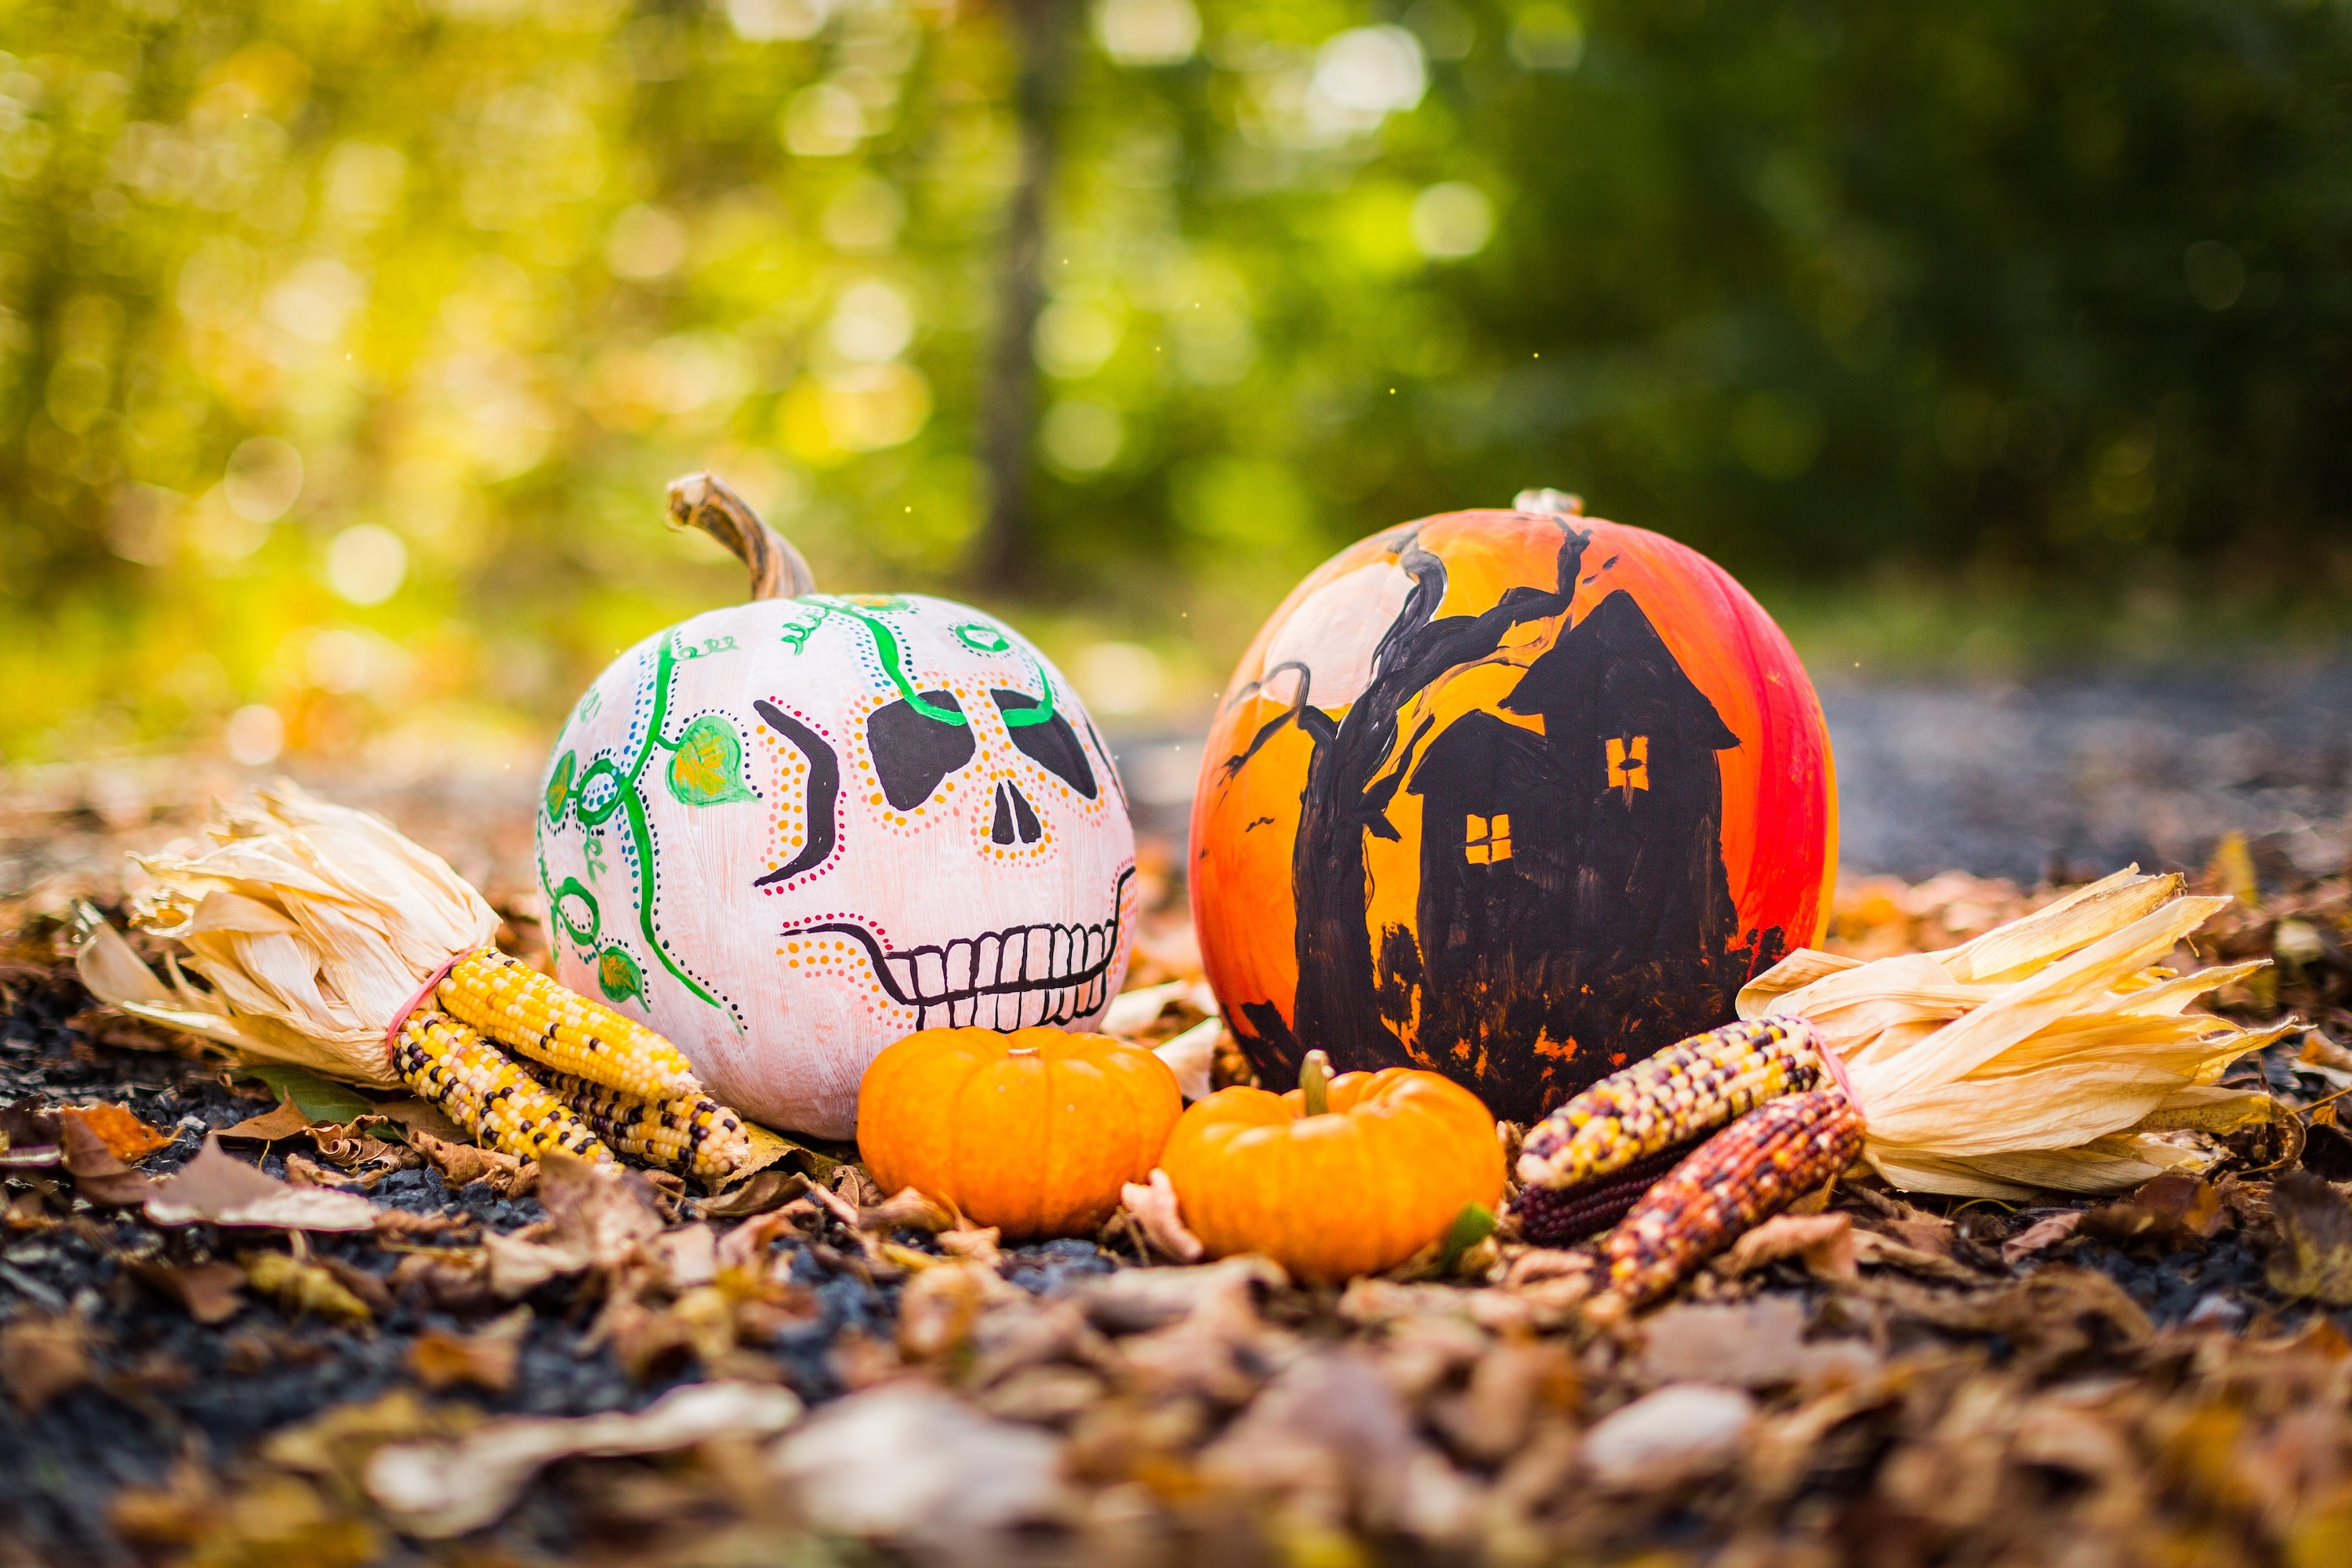 Allow your Scouts and Guides to unleash their creative side with some Halloween-inspired pumpkin art